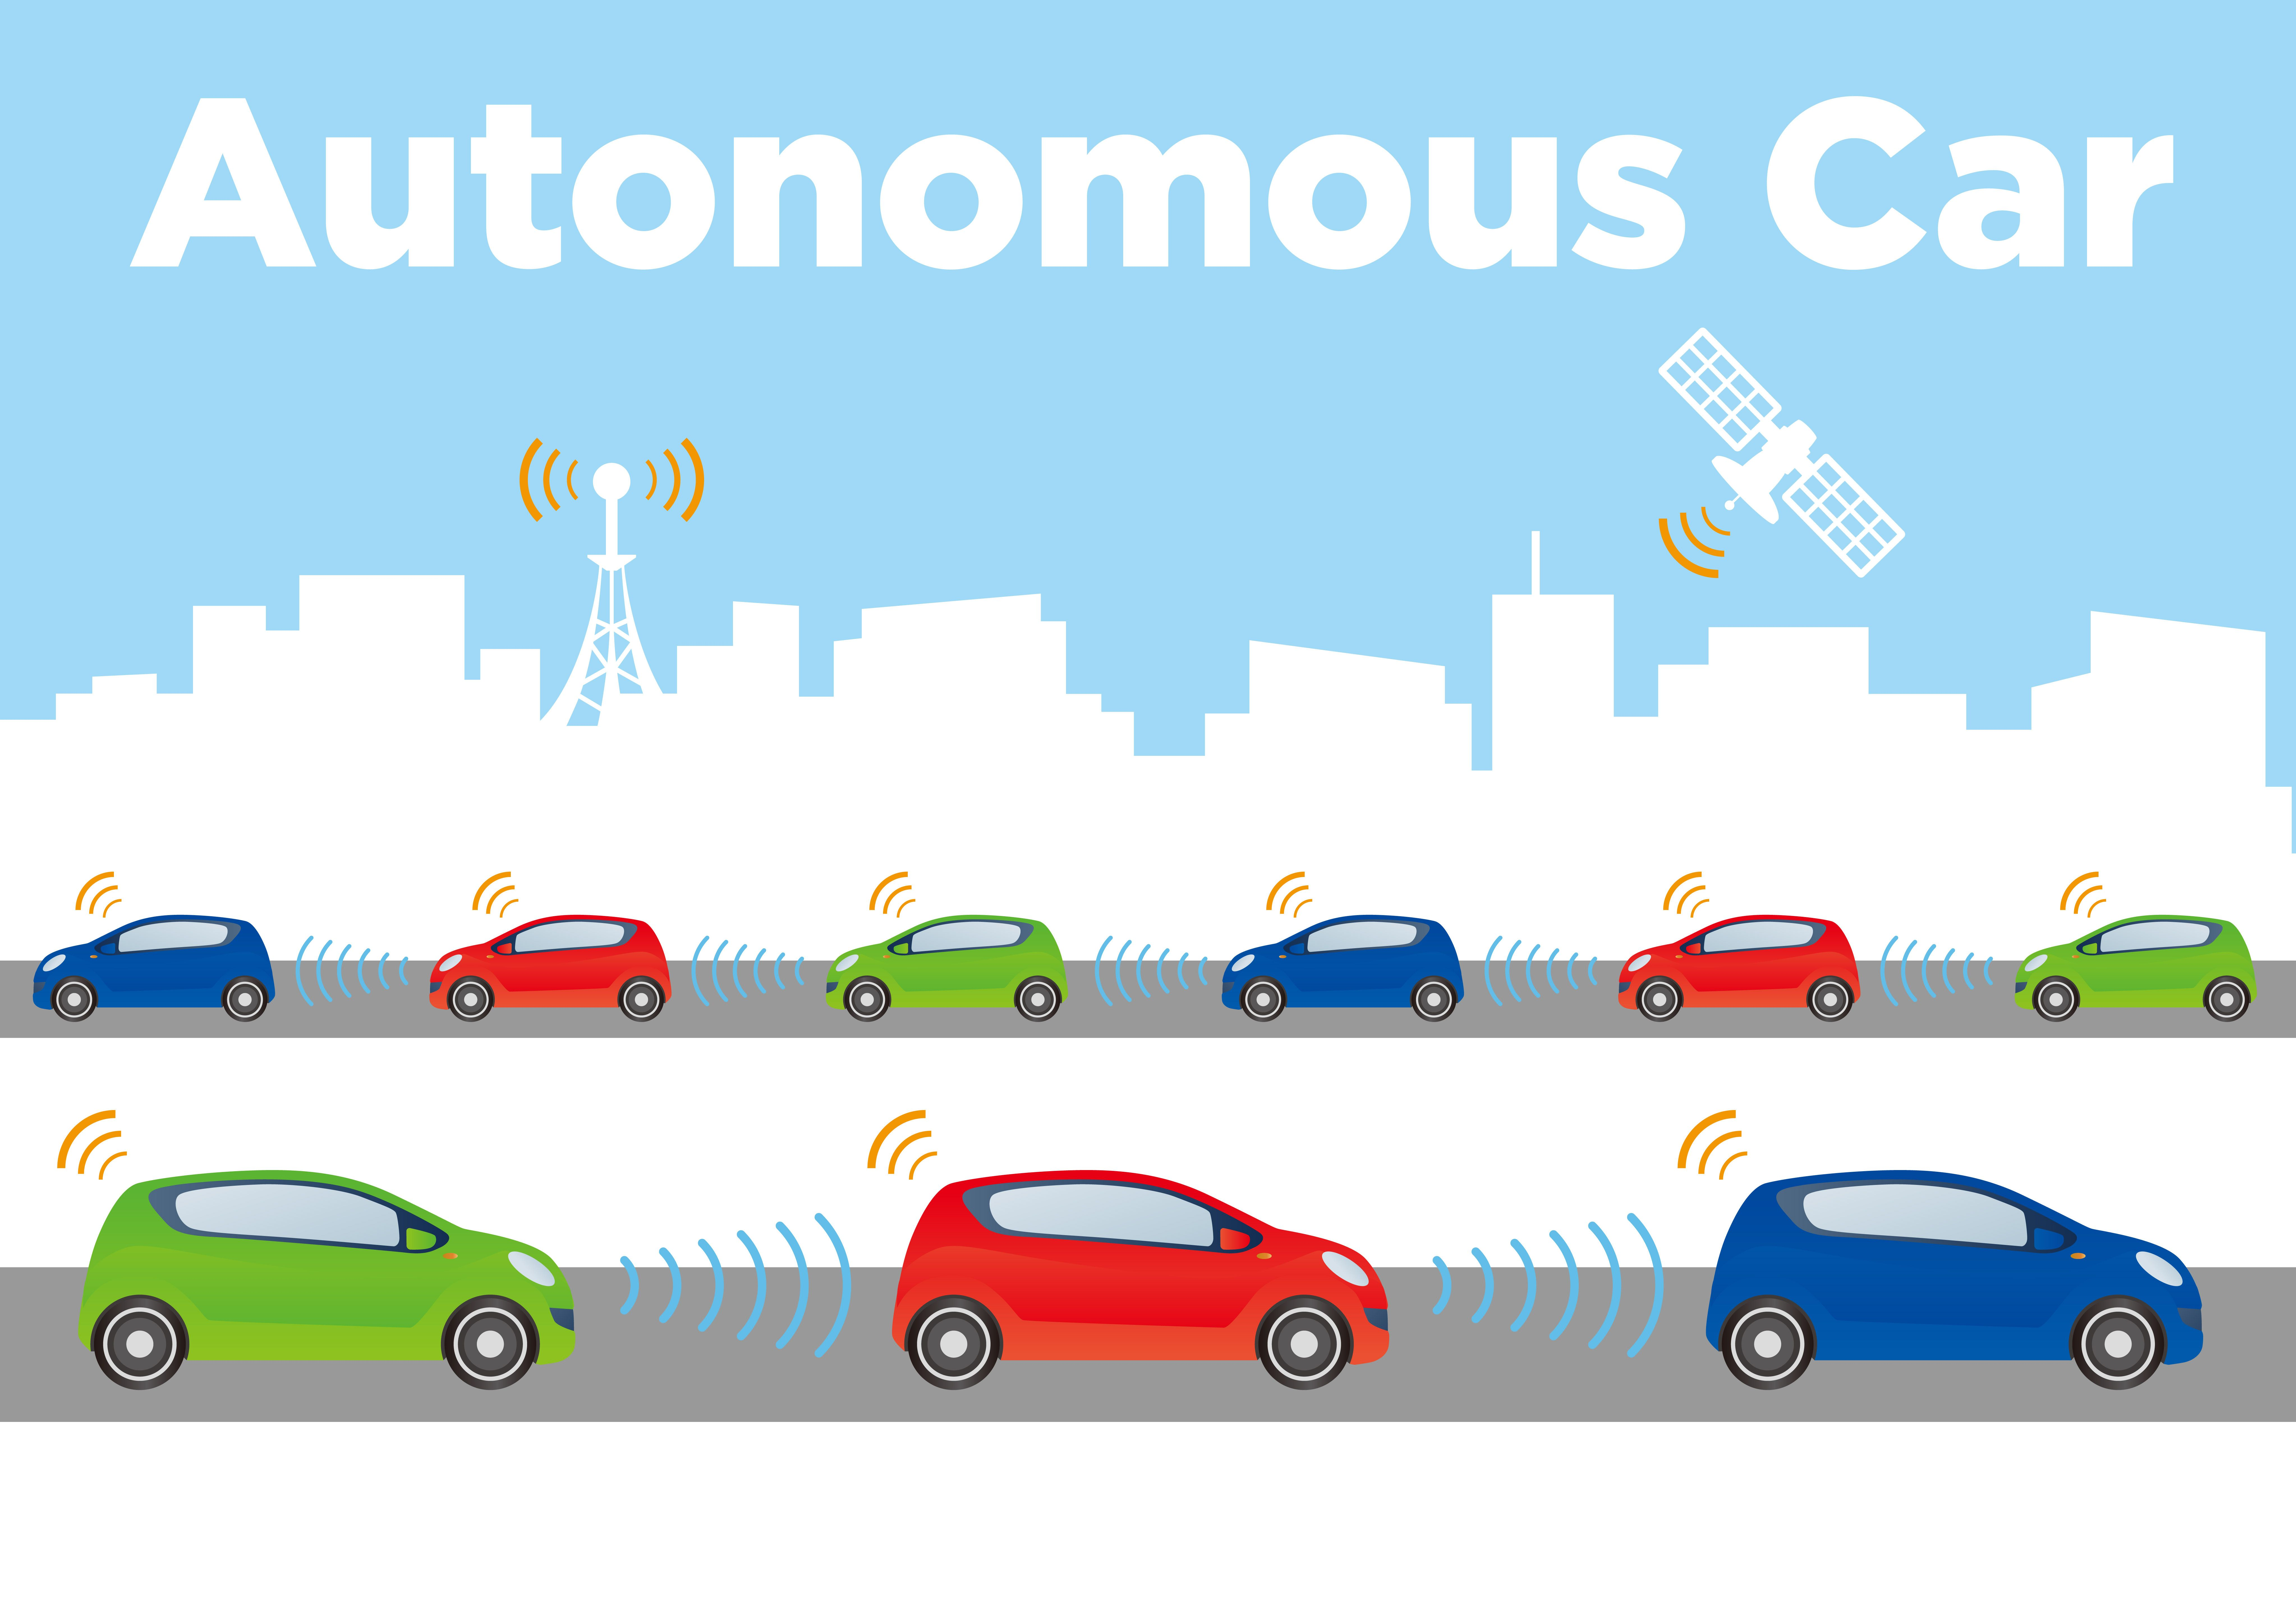 Self Driving Car Could Lead To Fewer Auto Accidents